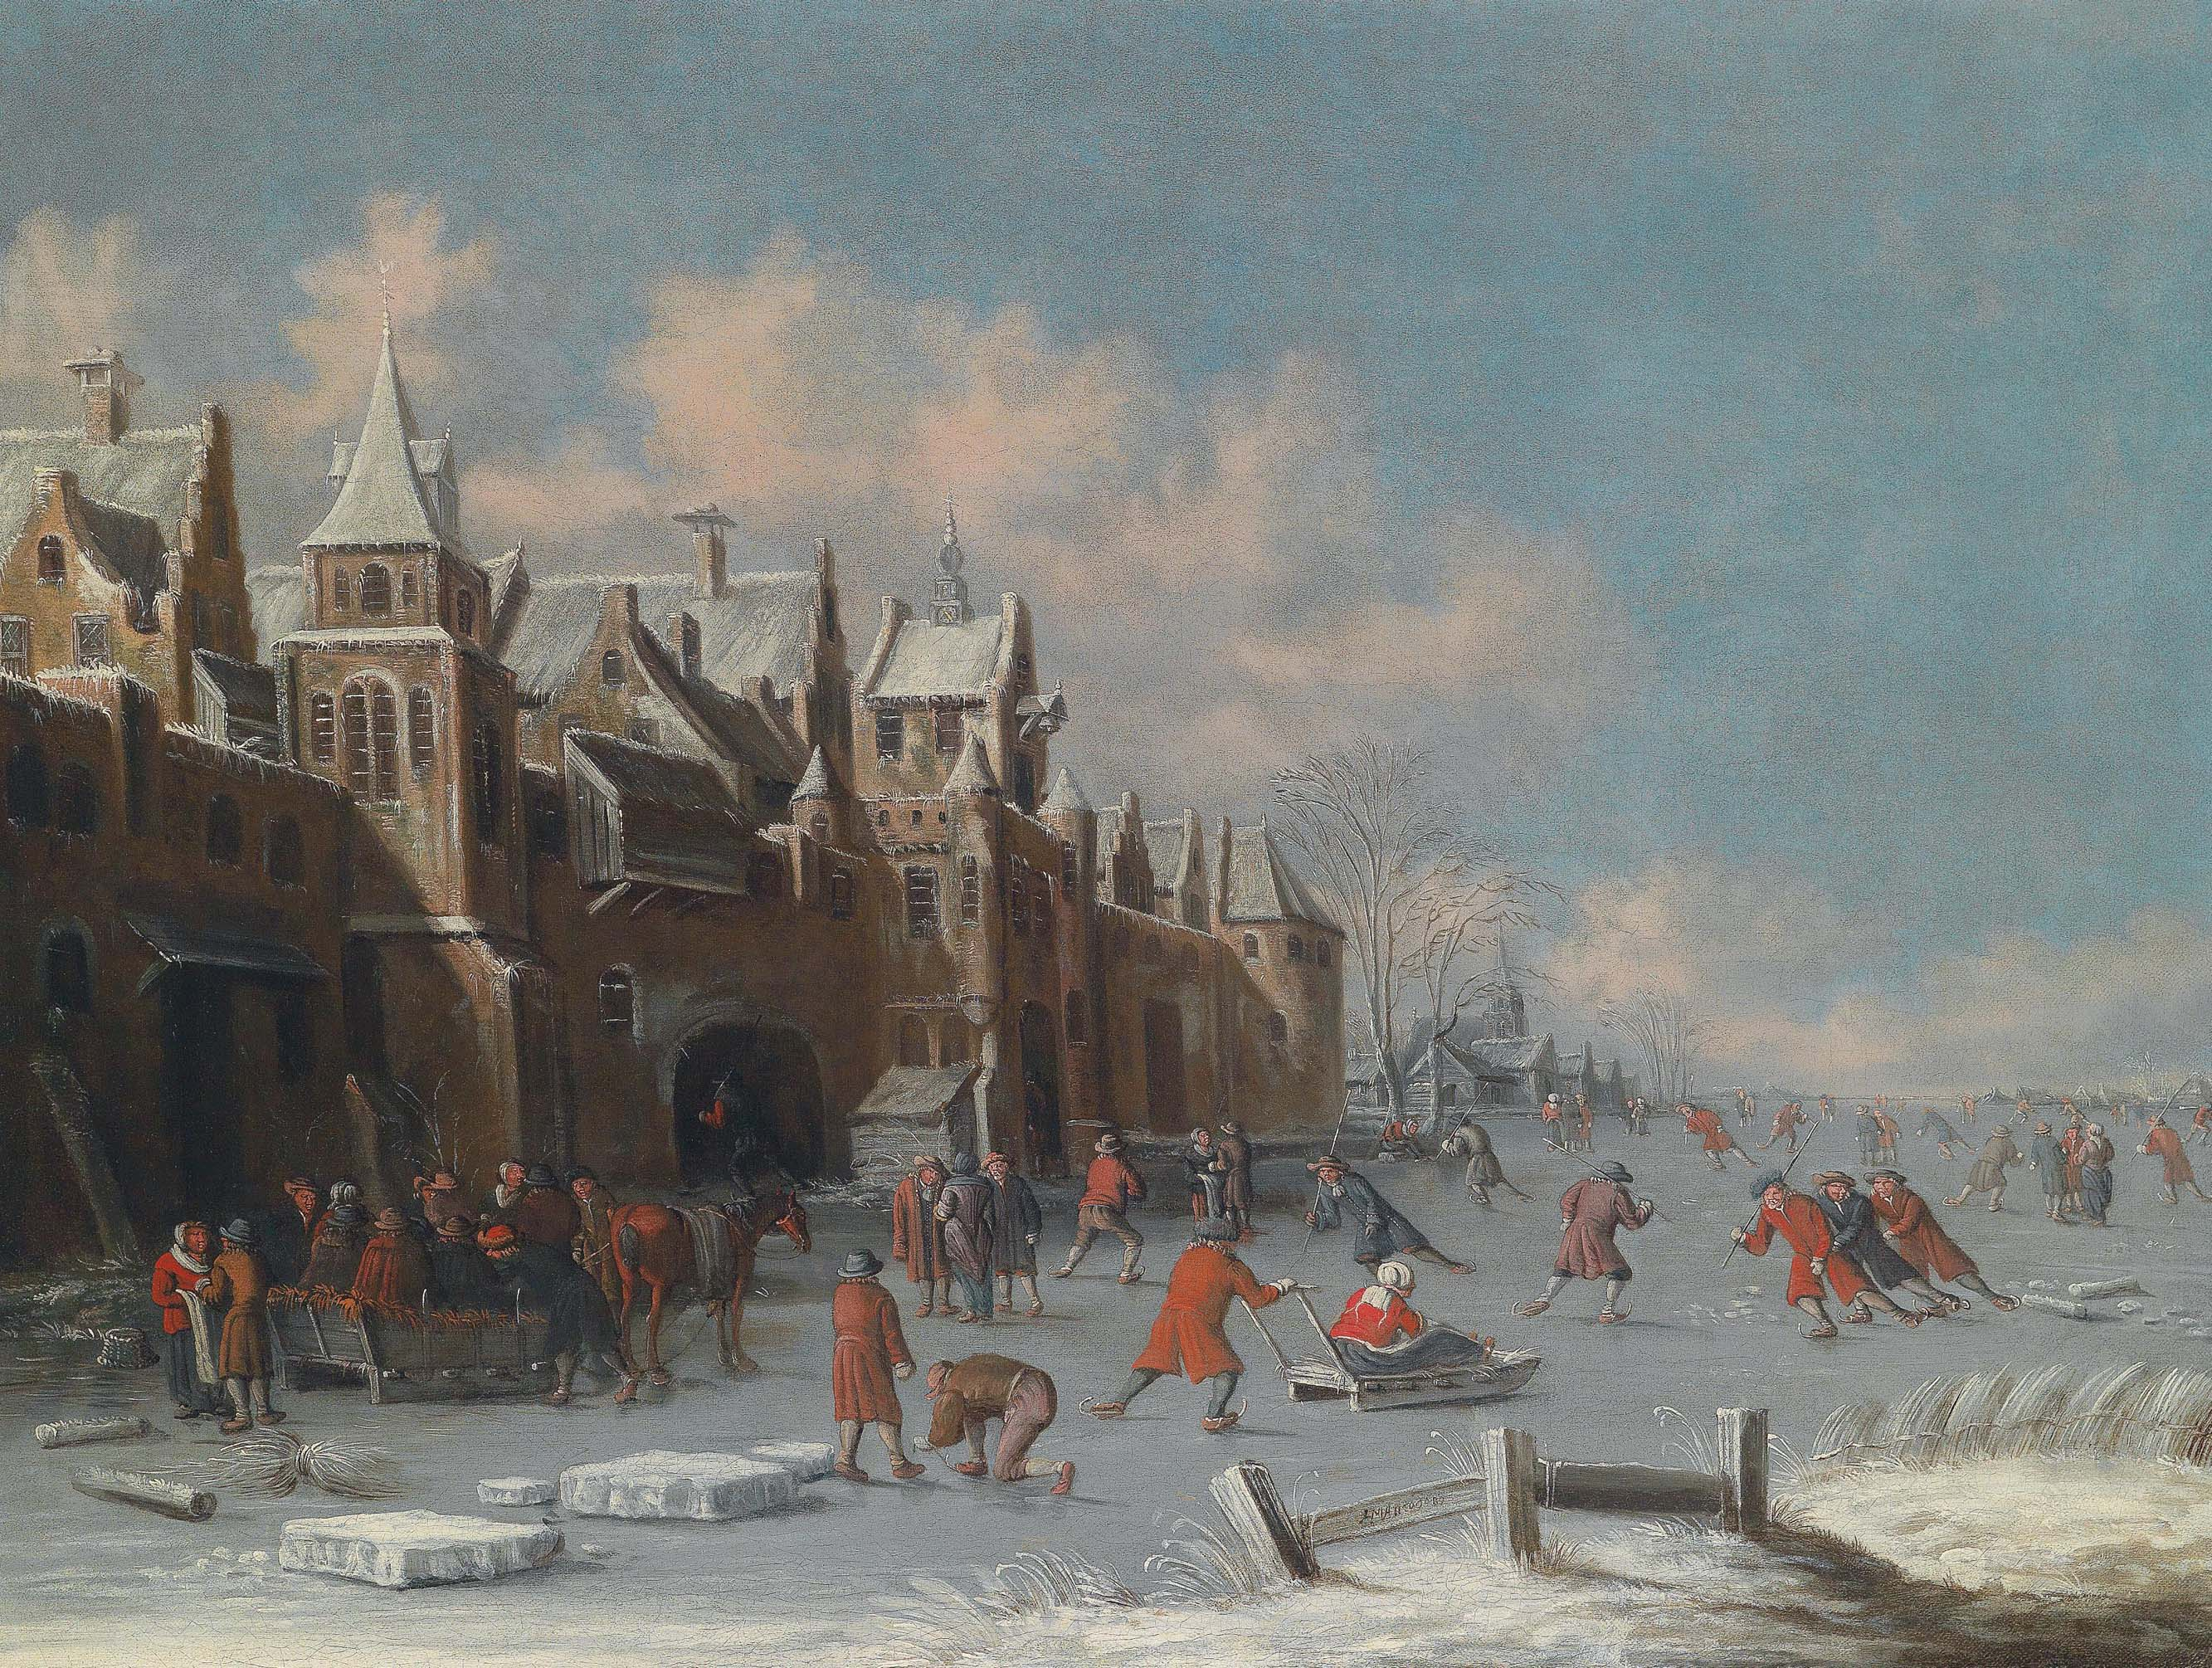 Skaters on the ice outside the gates of a Dutch city